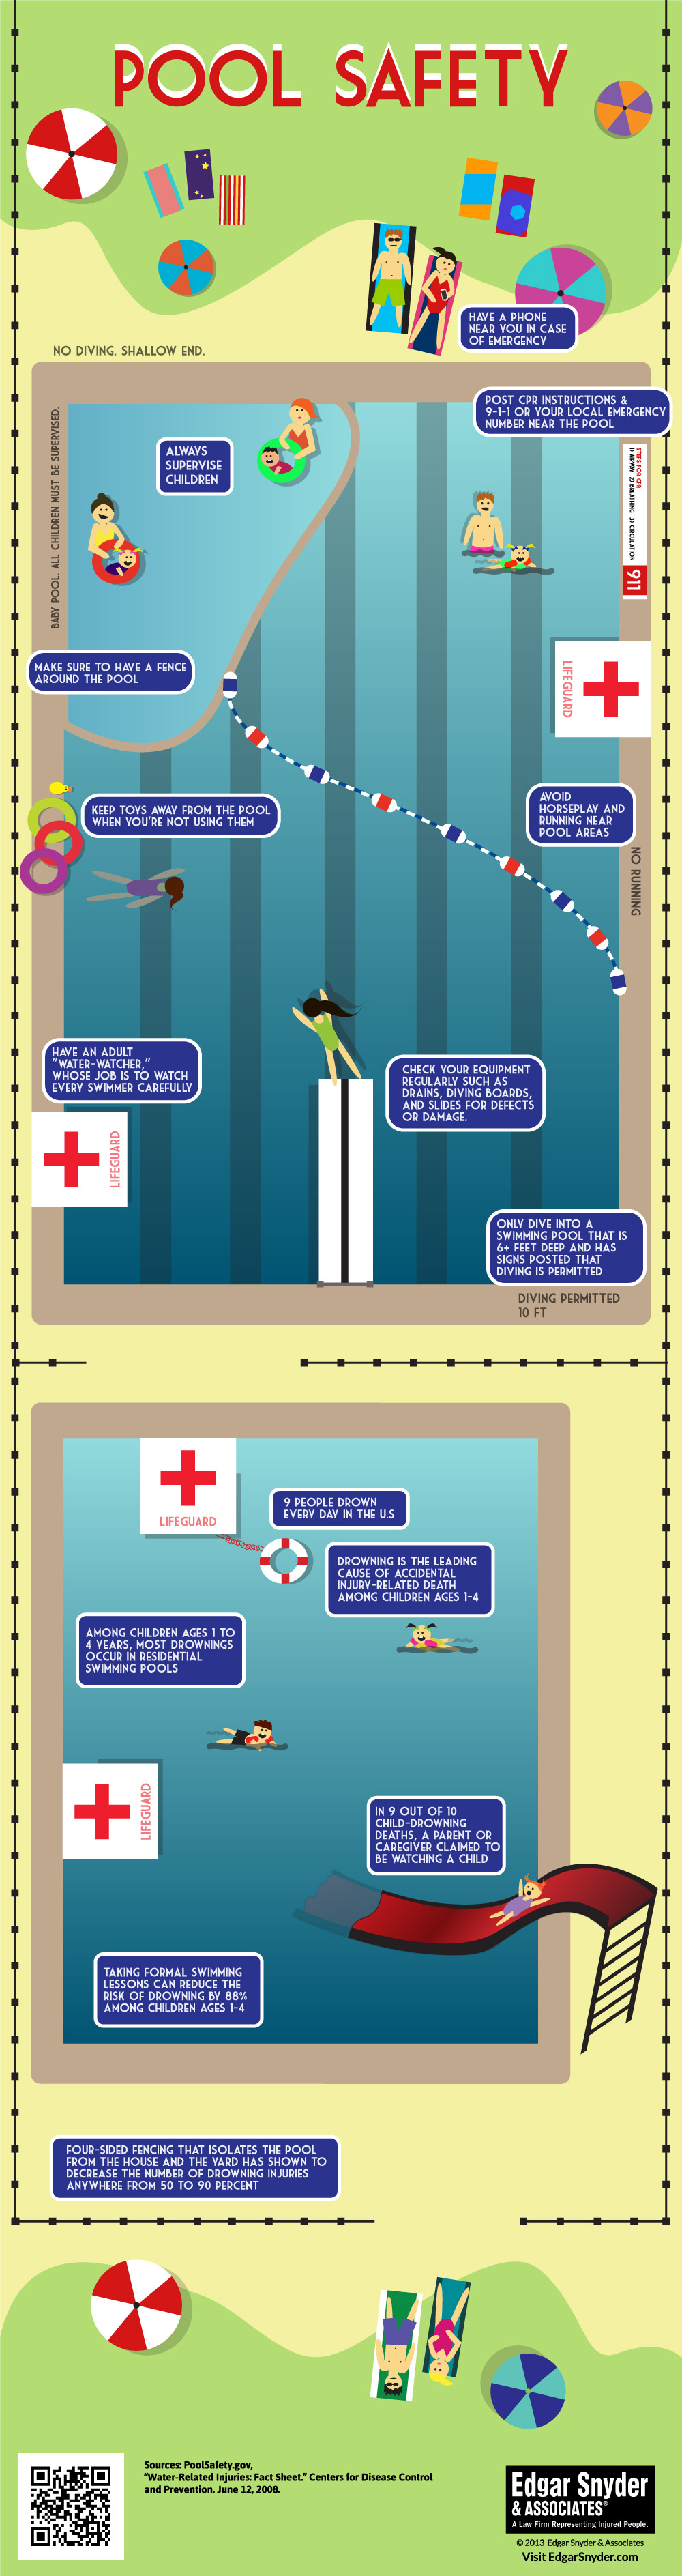 Swimming Pool Safety - Infographic